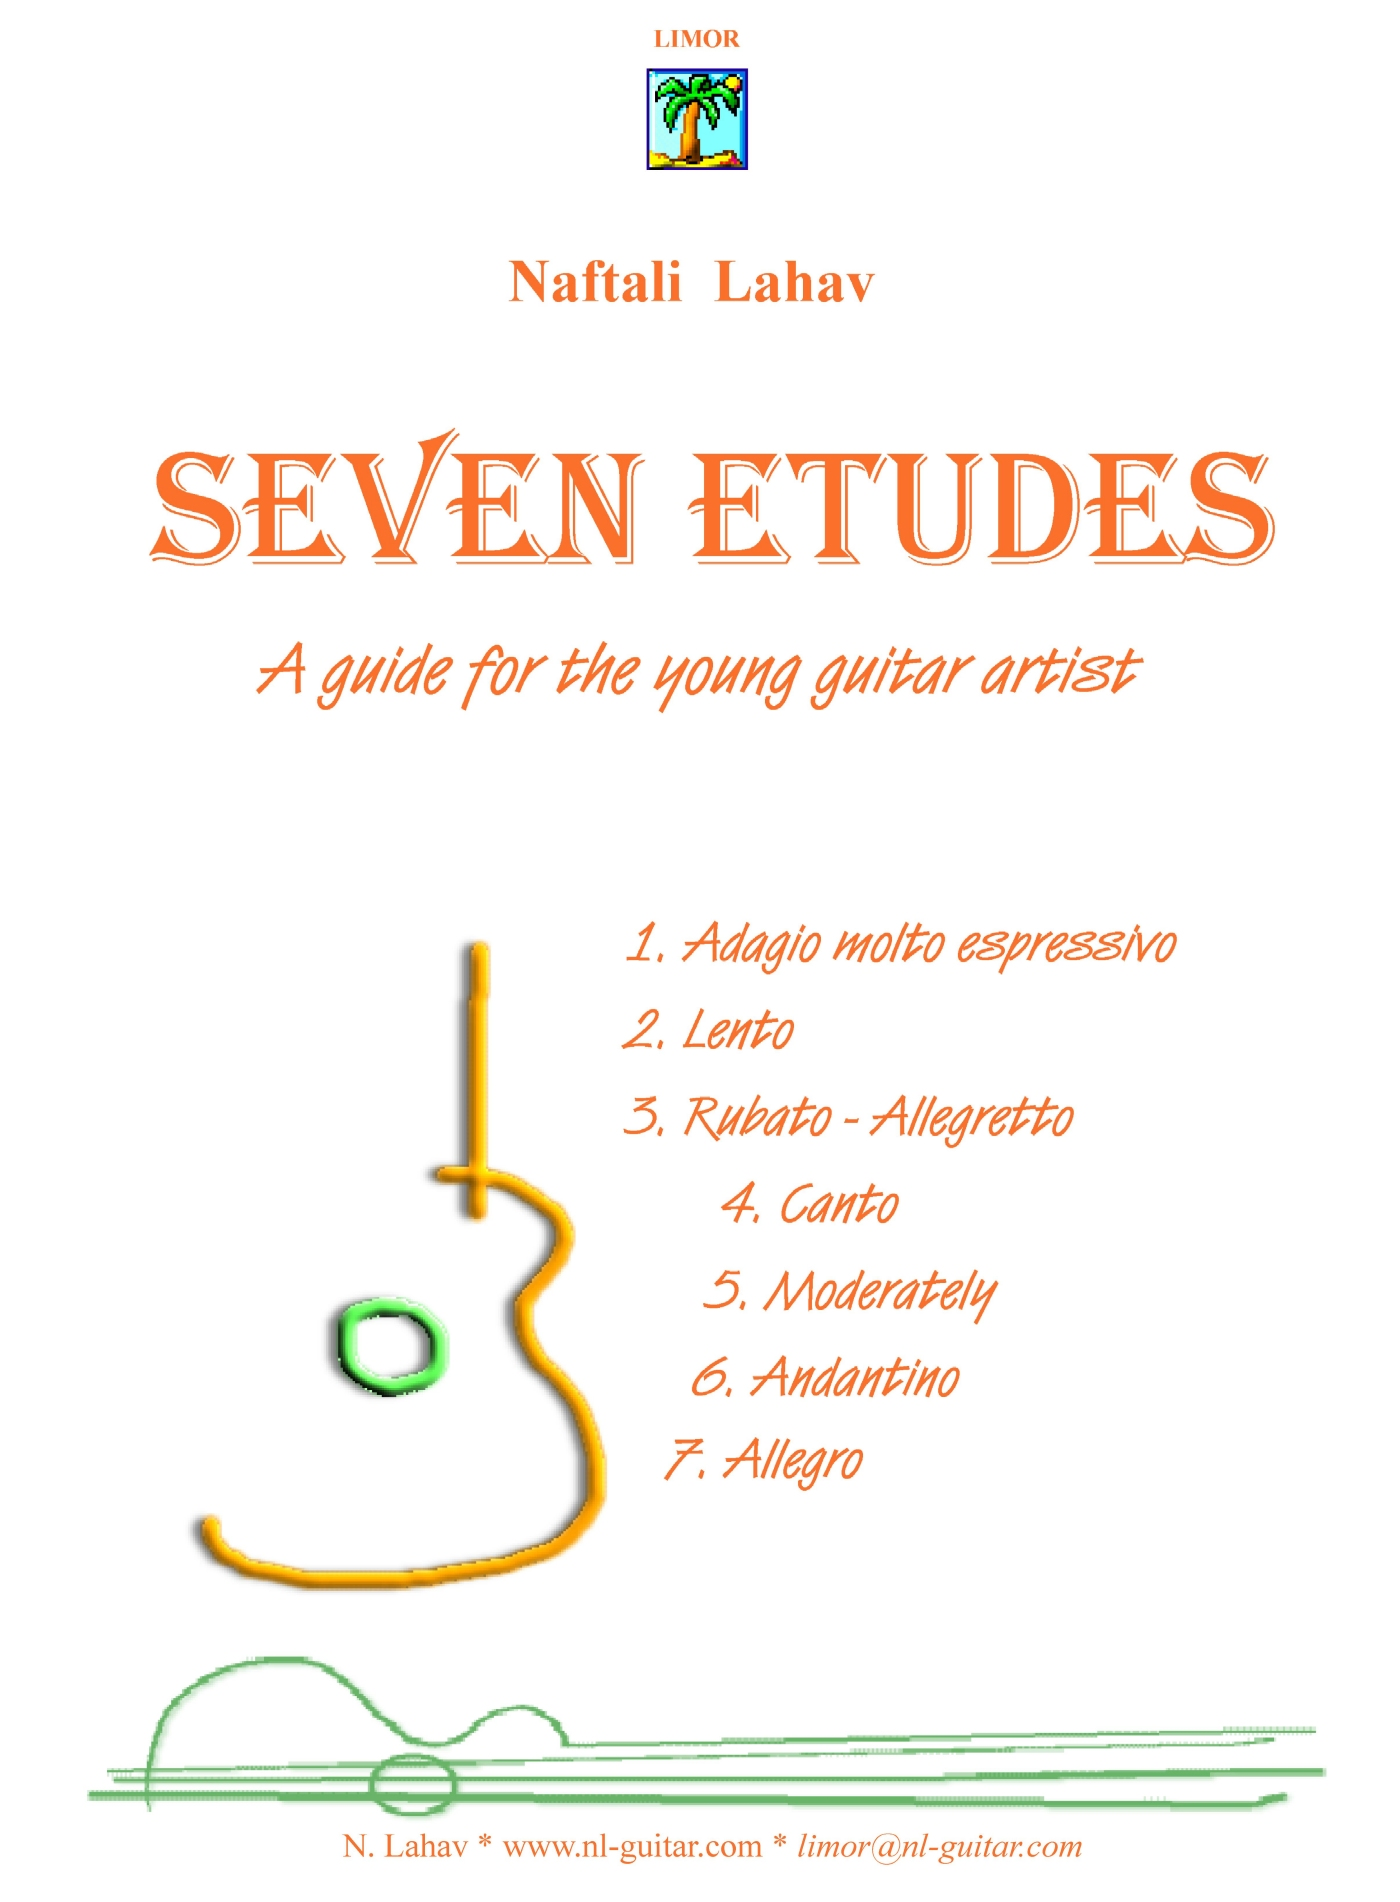 Seven Etudes - A guide for the young guitar artist - PDF